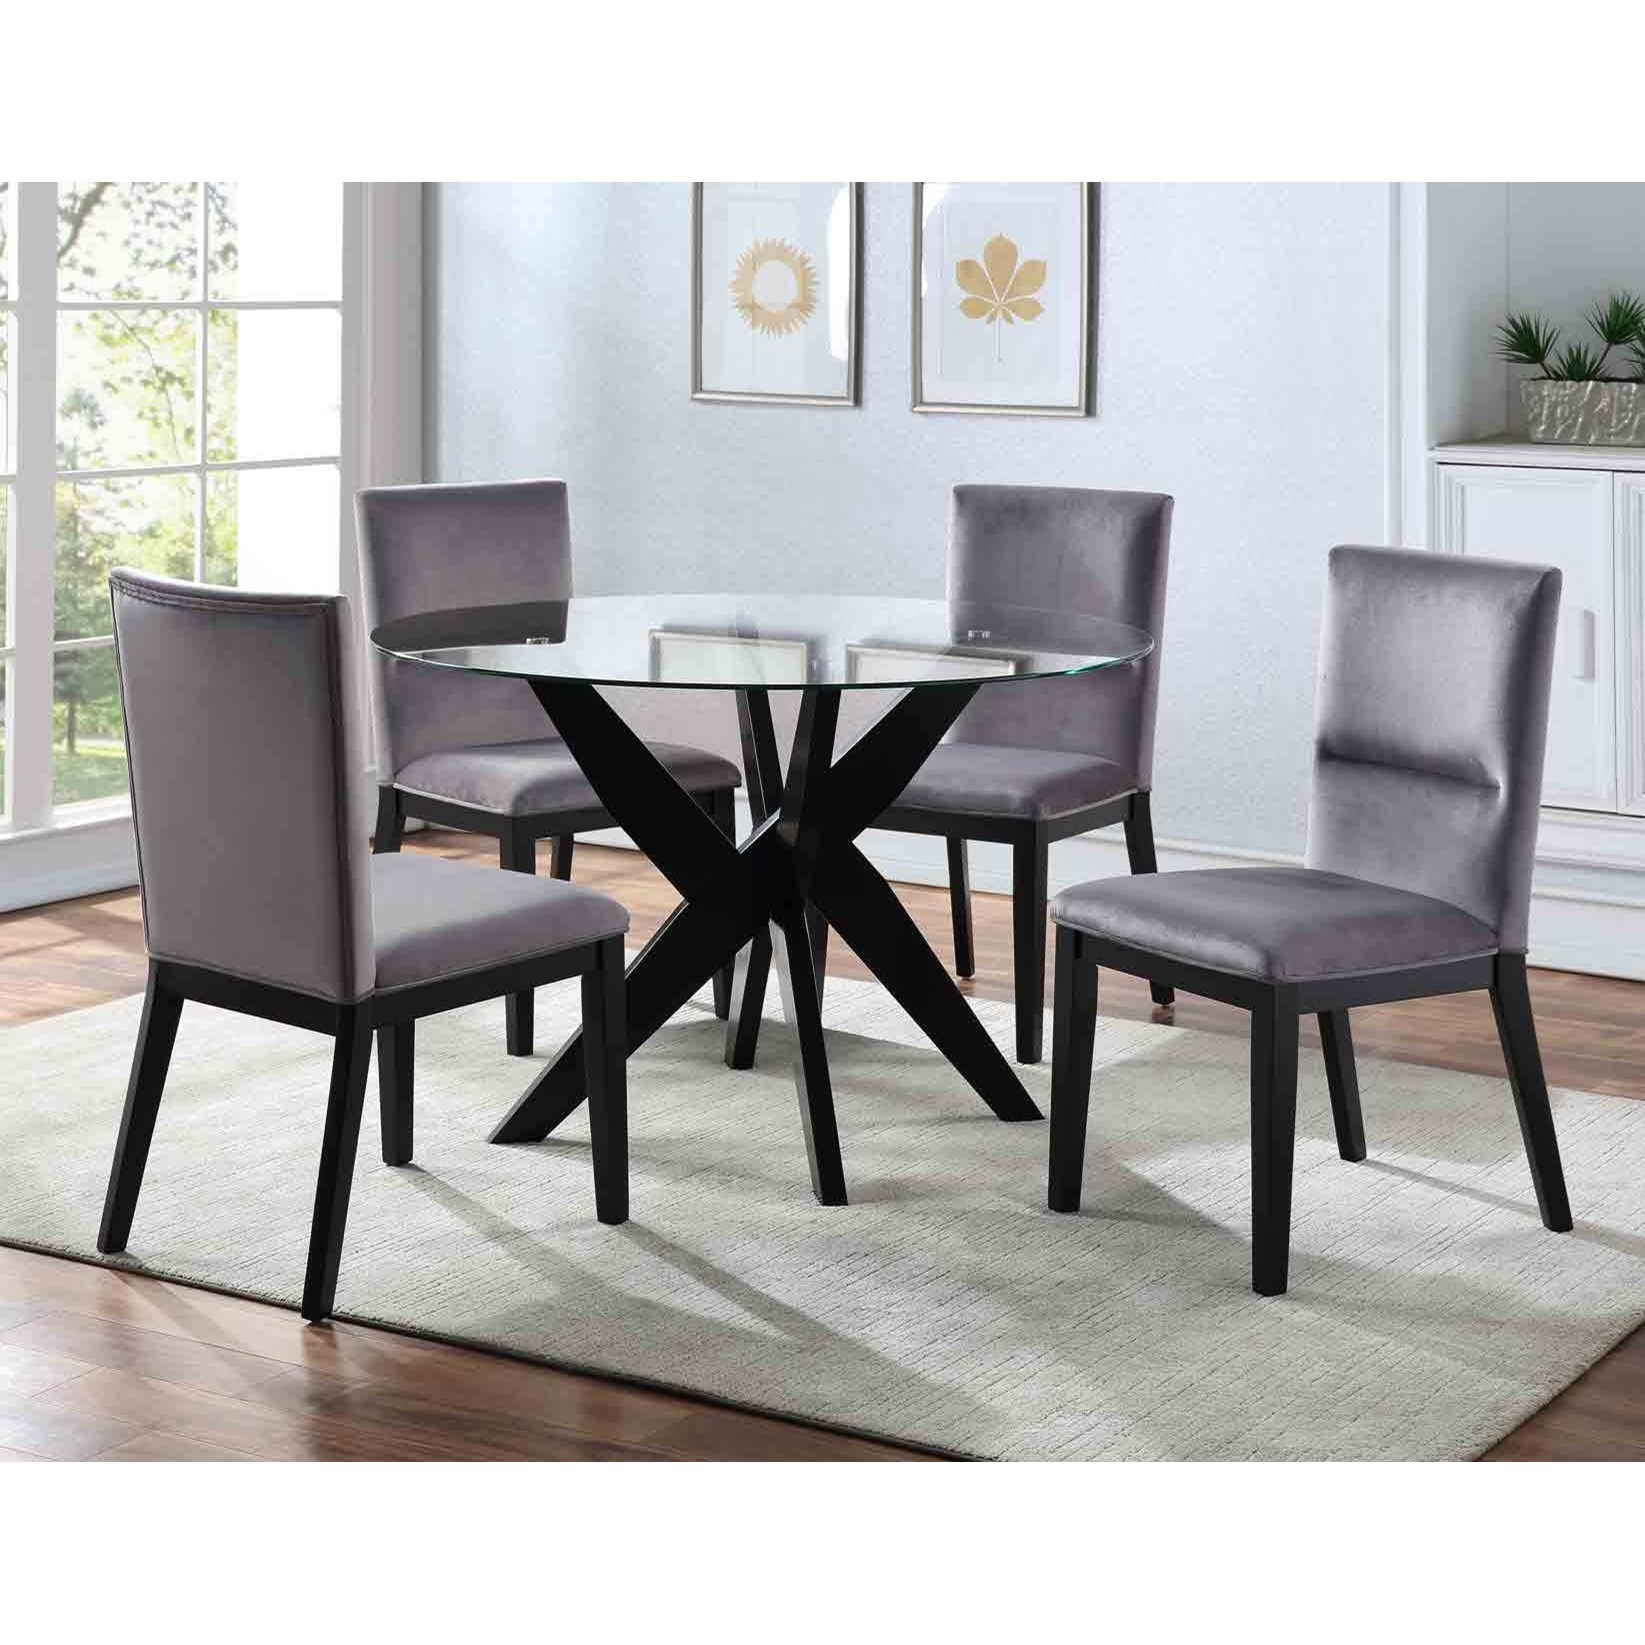 Amalie 5-Piece Dining Set  by Steve Silver at Van Hill Furniture